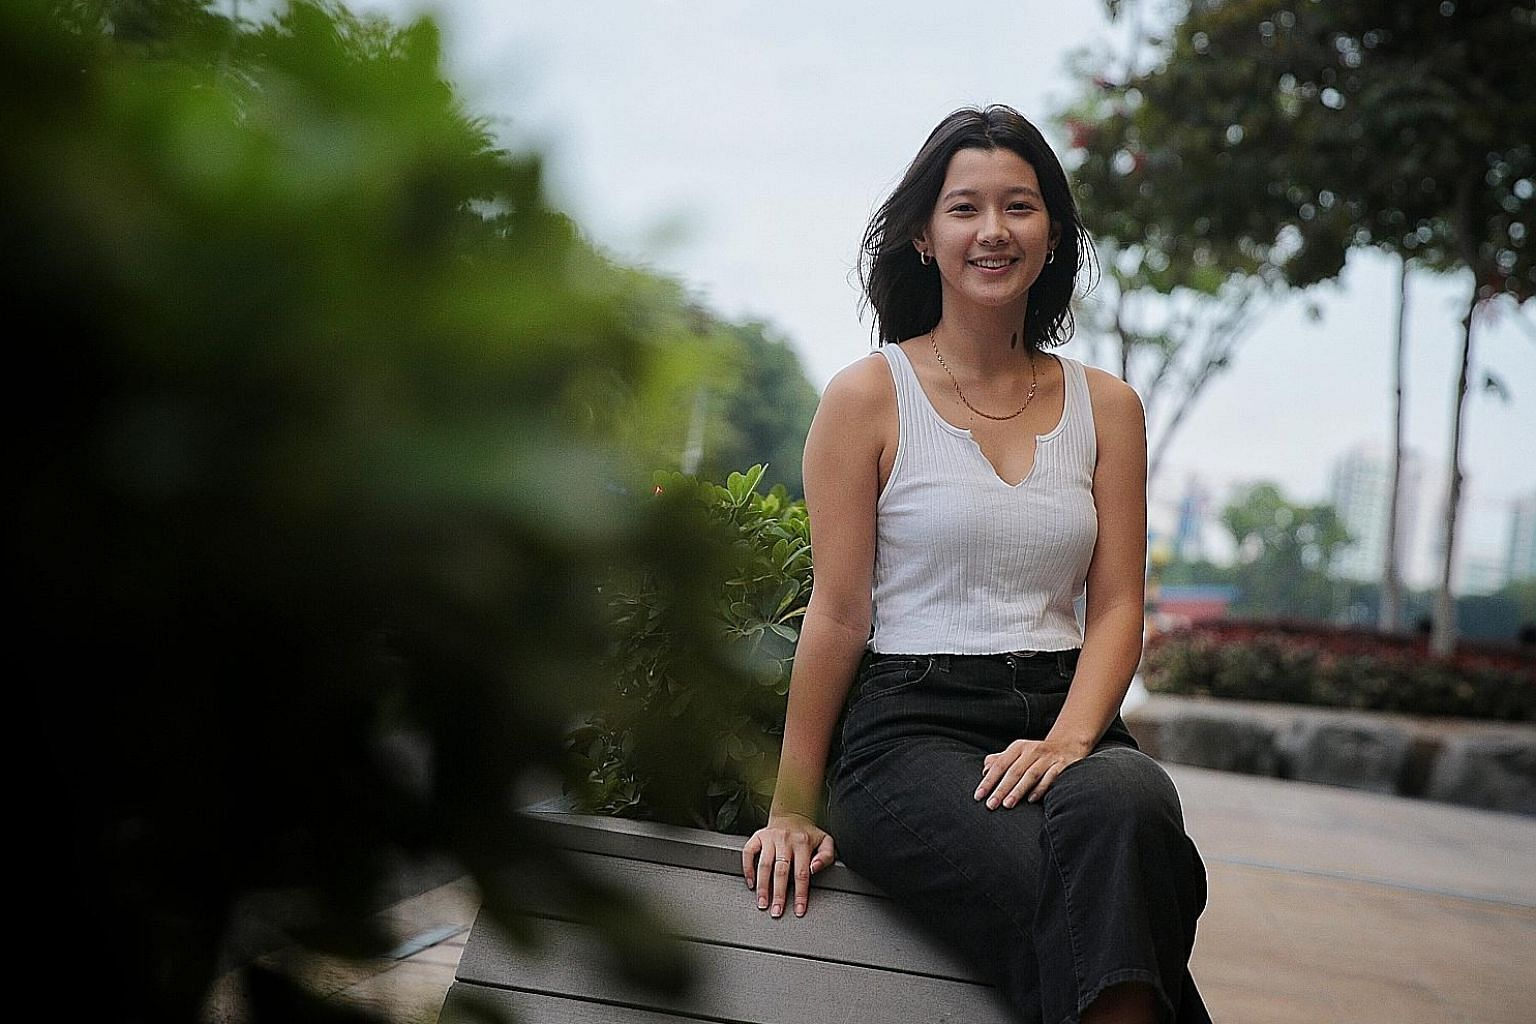 National University of Singapore undergraduate Monica Baey, who was filmed showering in Eusoff Hall by a fellow student last year, was a panellist at Taking Ctrl, Finding Alt 2019 yesterday. She said she hopes she can help others who have experienced